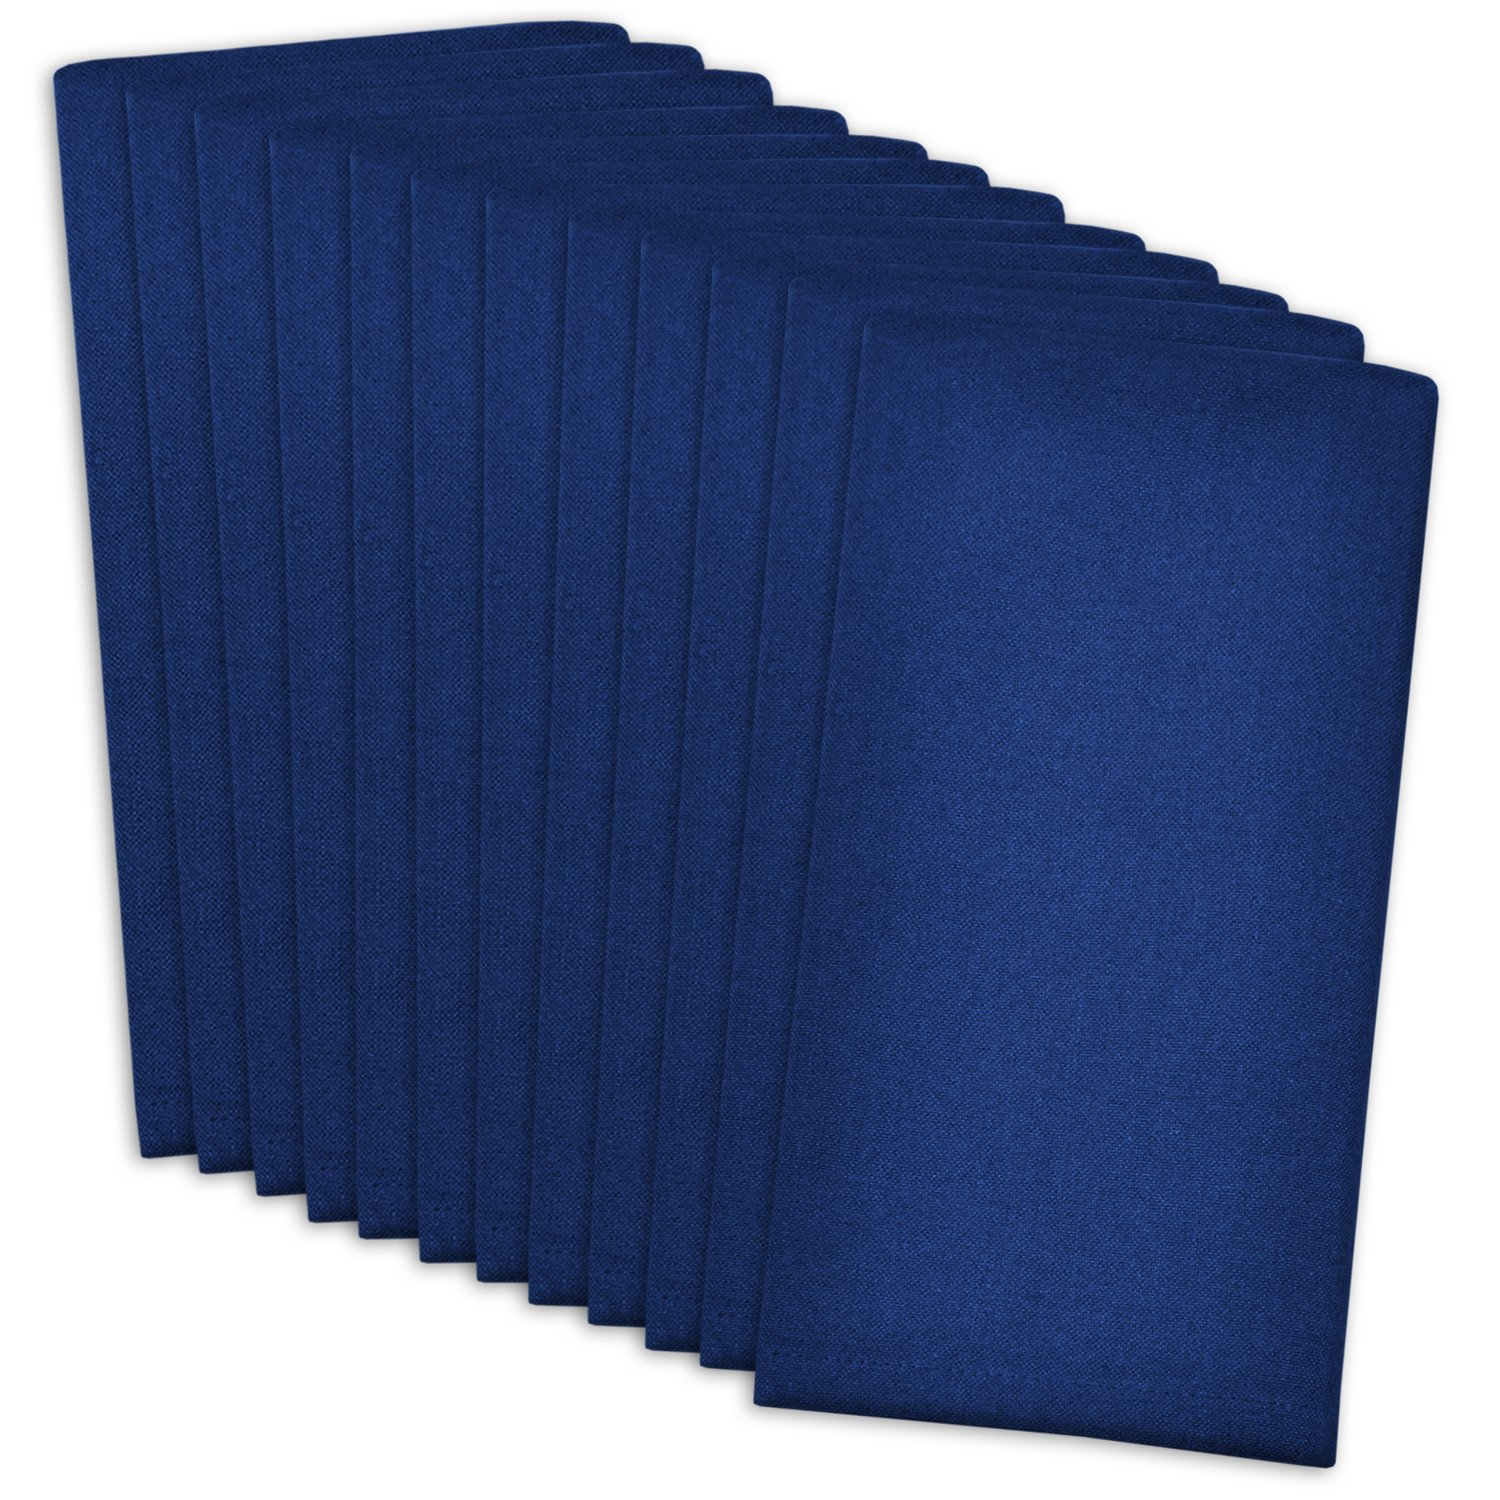 DII 100% Cotton, Machine Washable Everyday Basic Buffet Napkin, 16 x 16, Nautical Blue, Set of 12